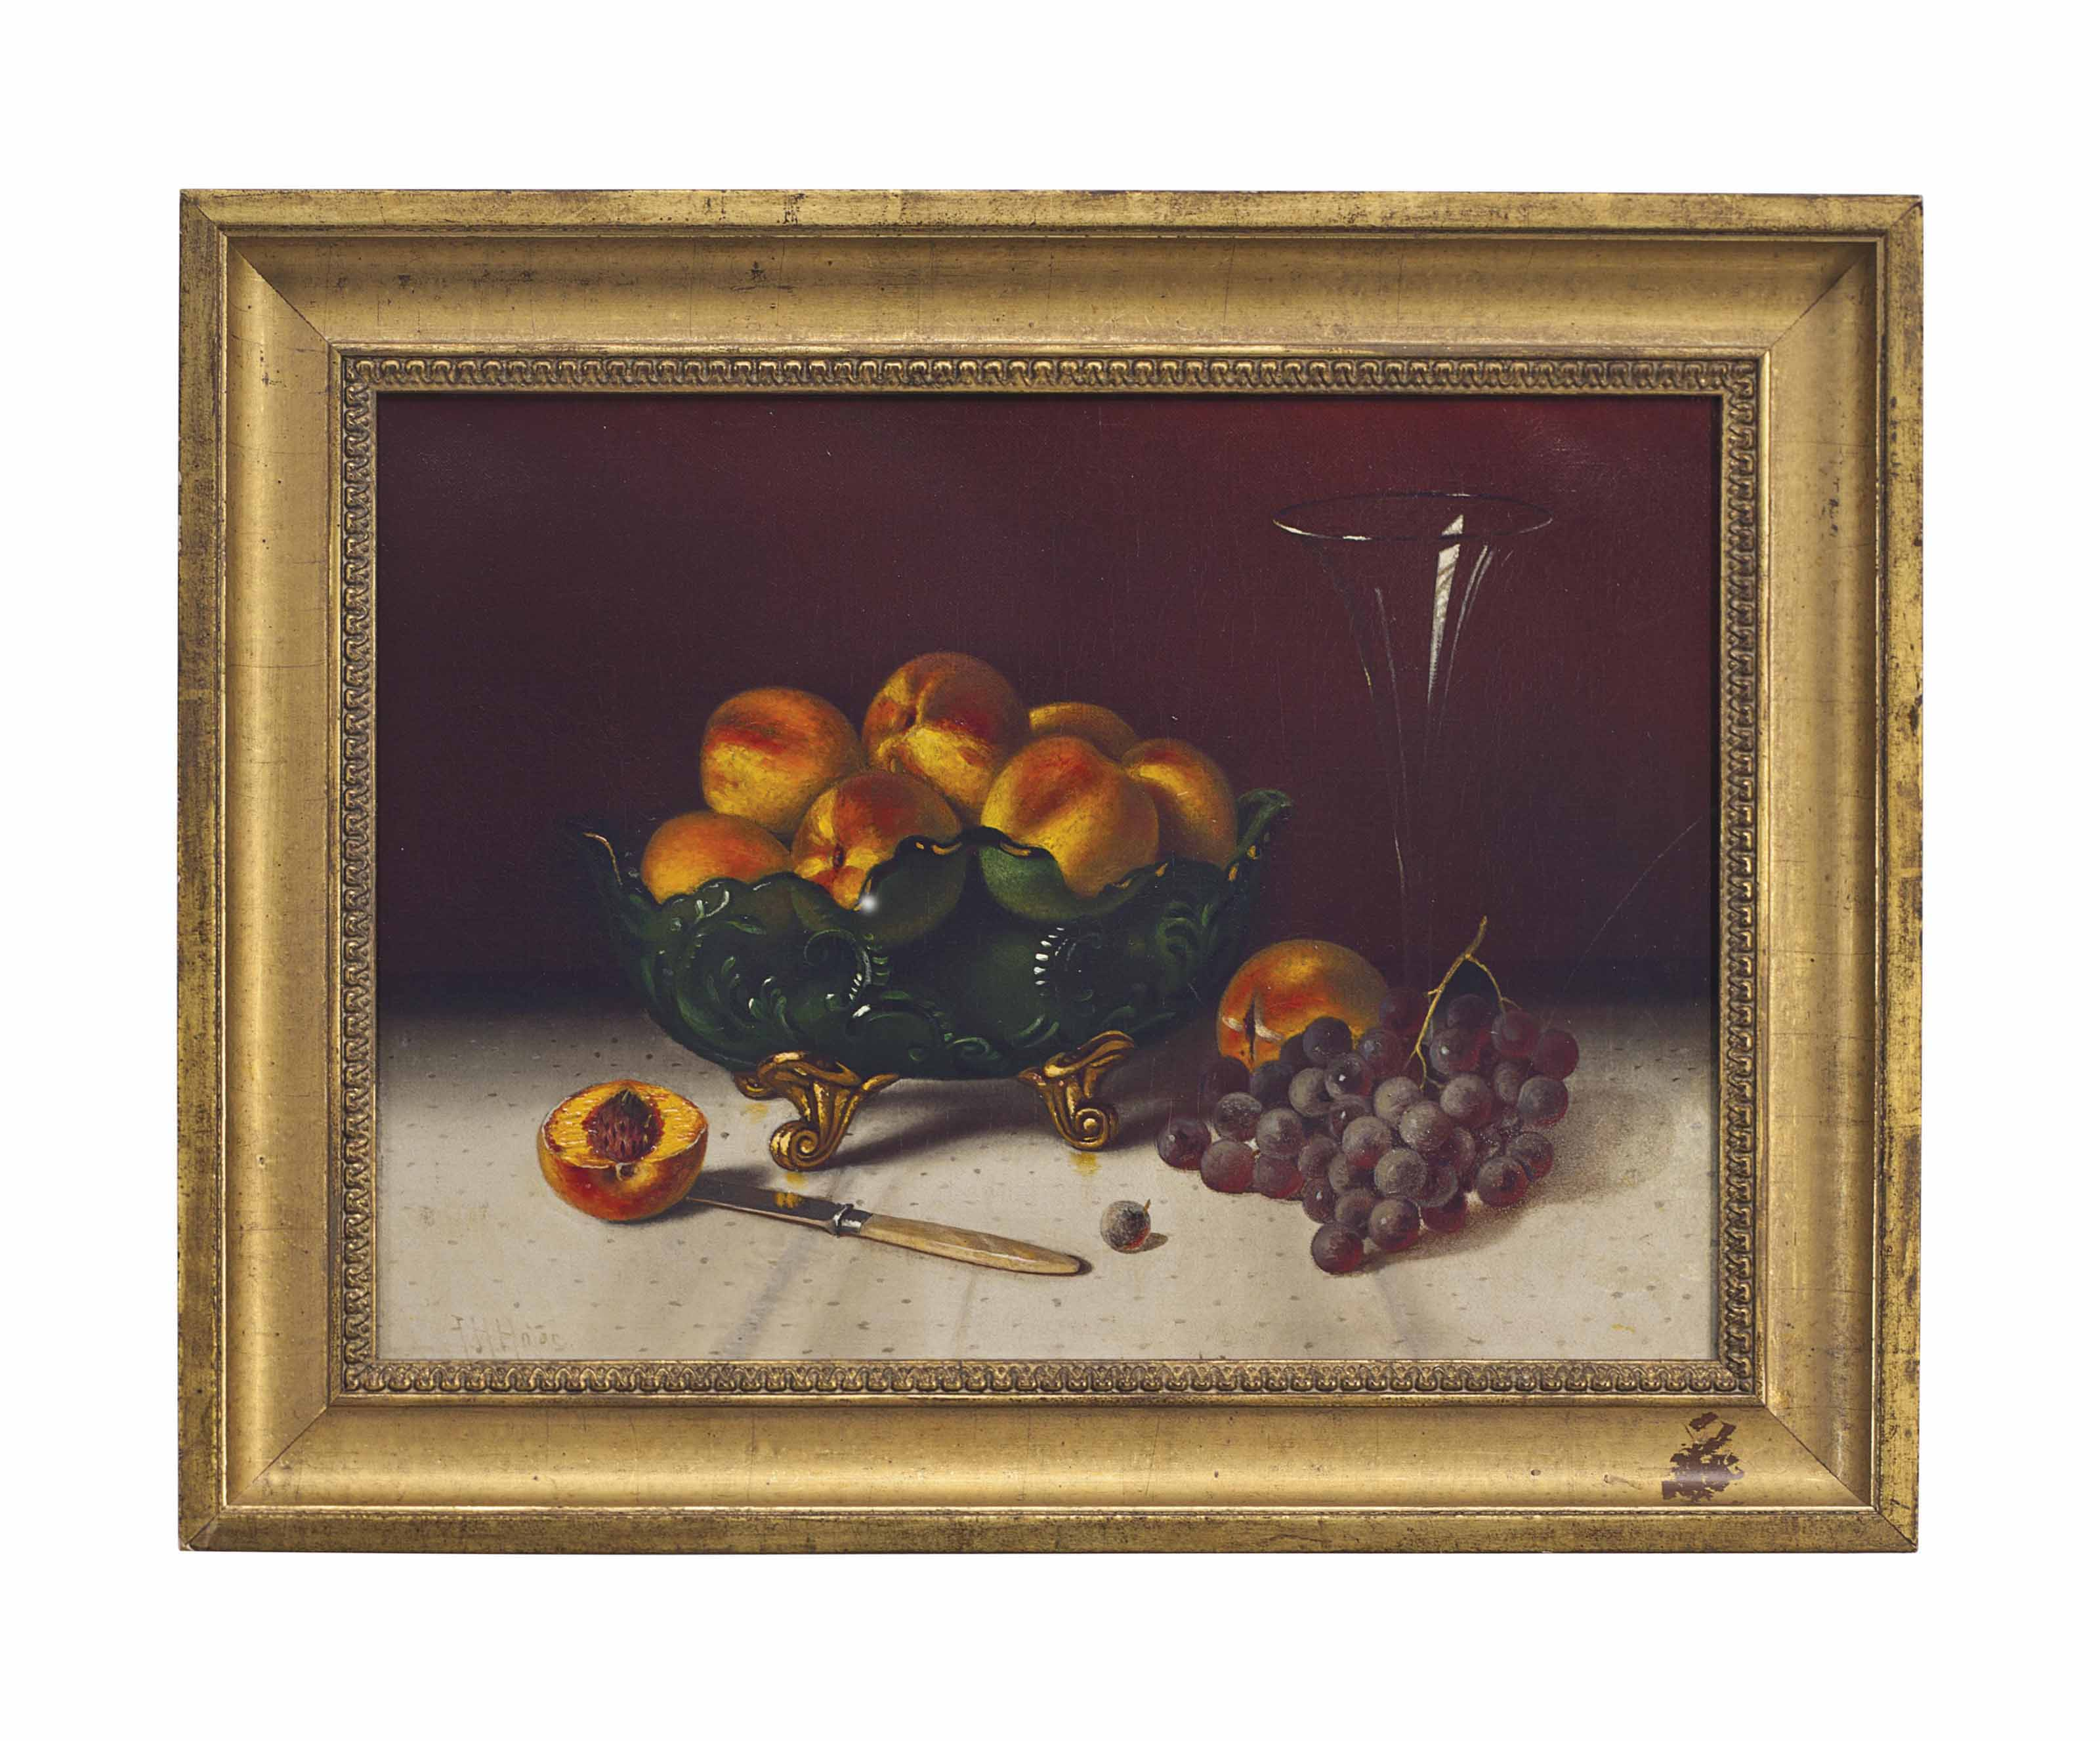 Peaches in green glass bowl, grapes and knife